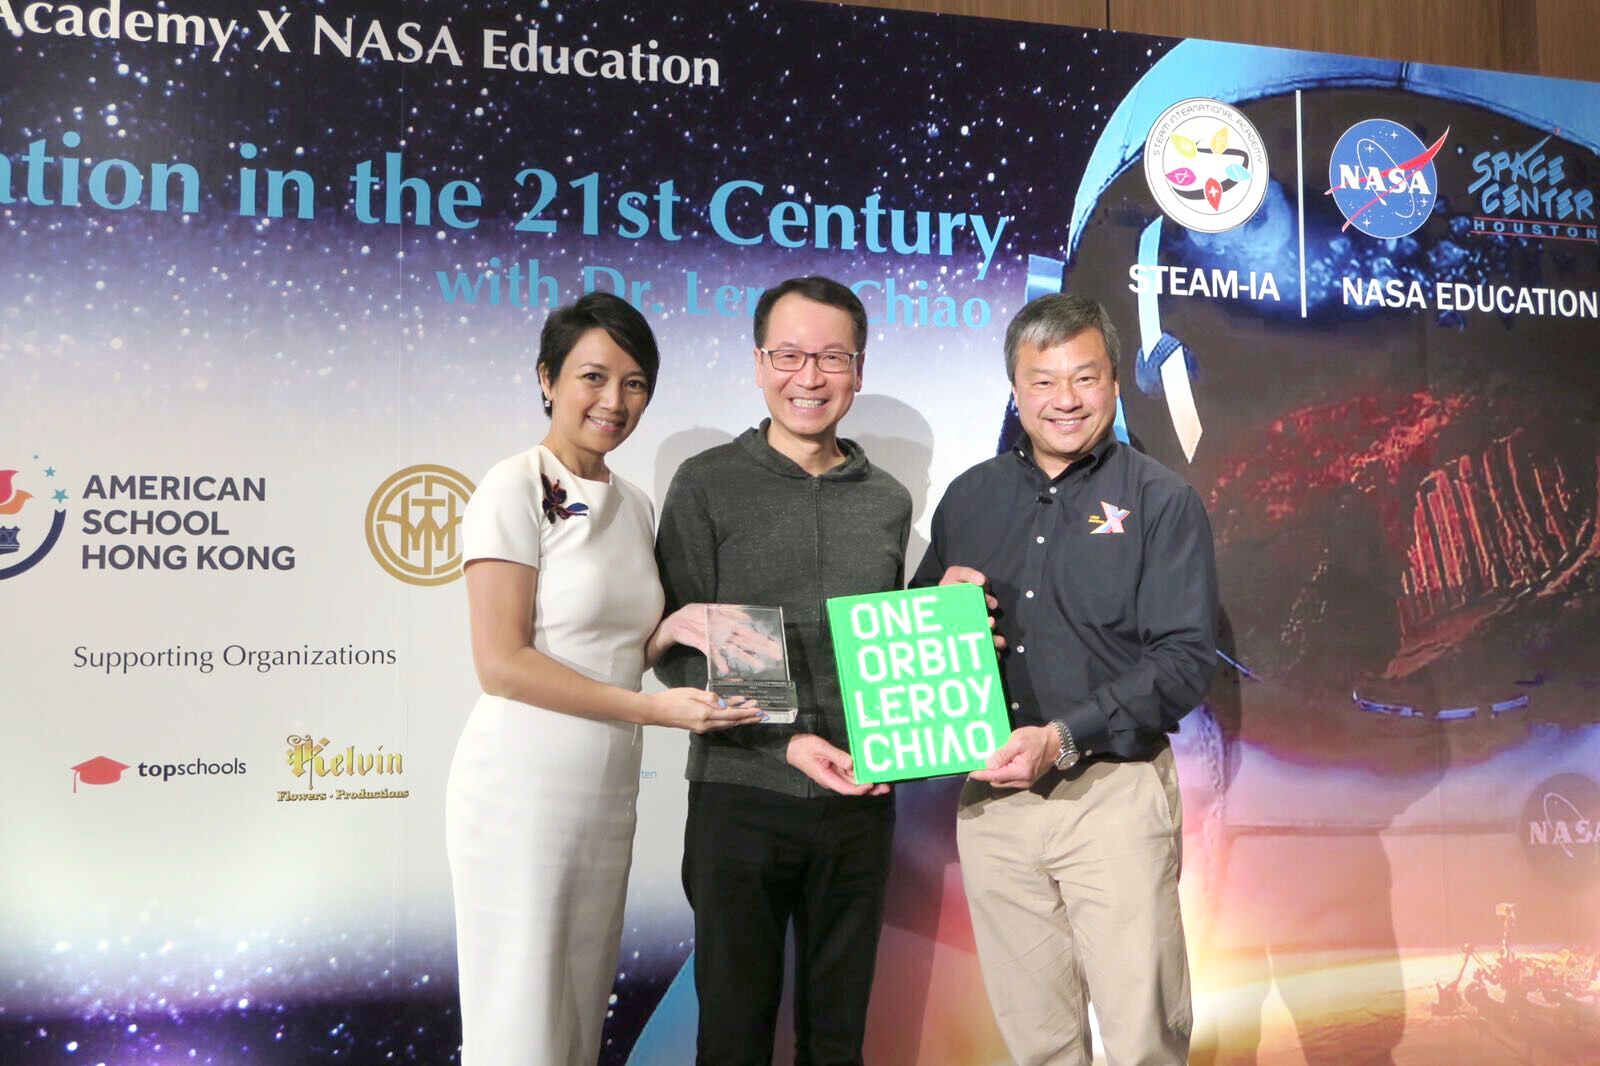 <b>[公益慈善] 景鸿集团金赞助「STEAM Education in the 21st Century with Dr. Leroy Chiao」</b>